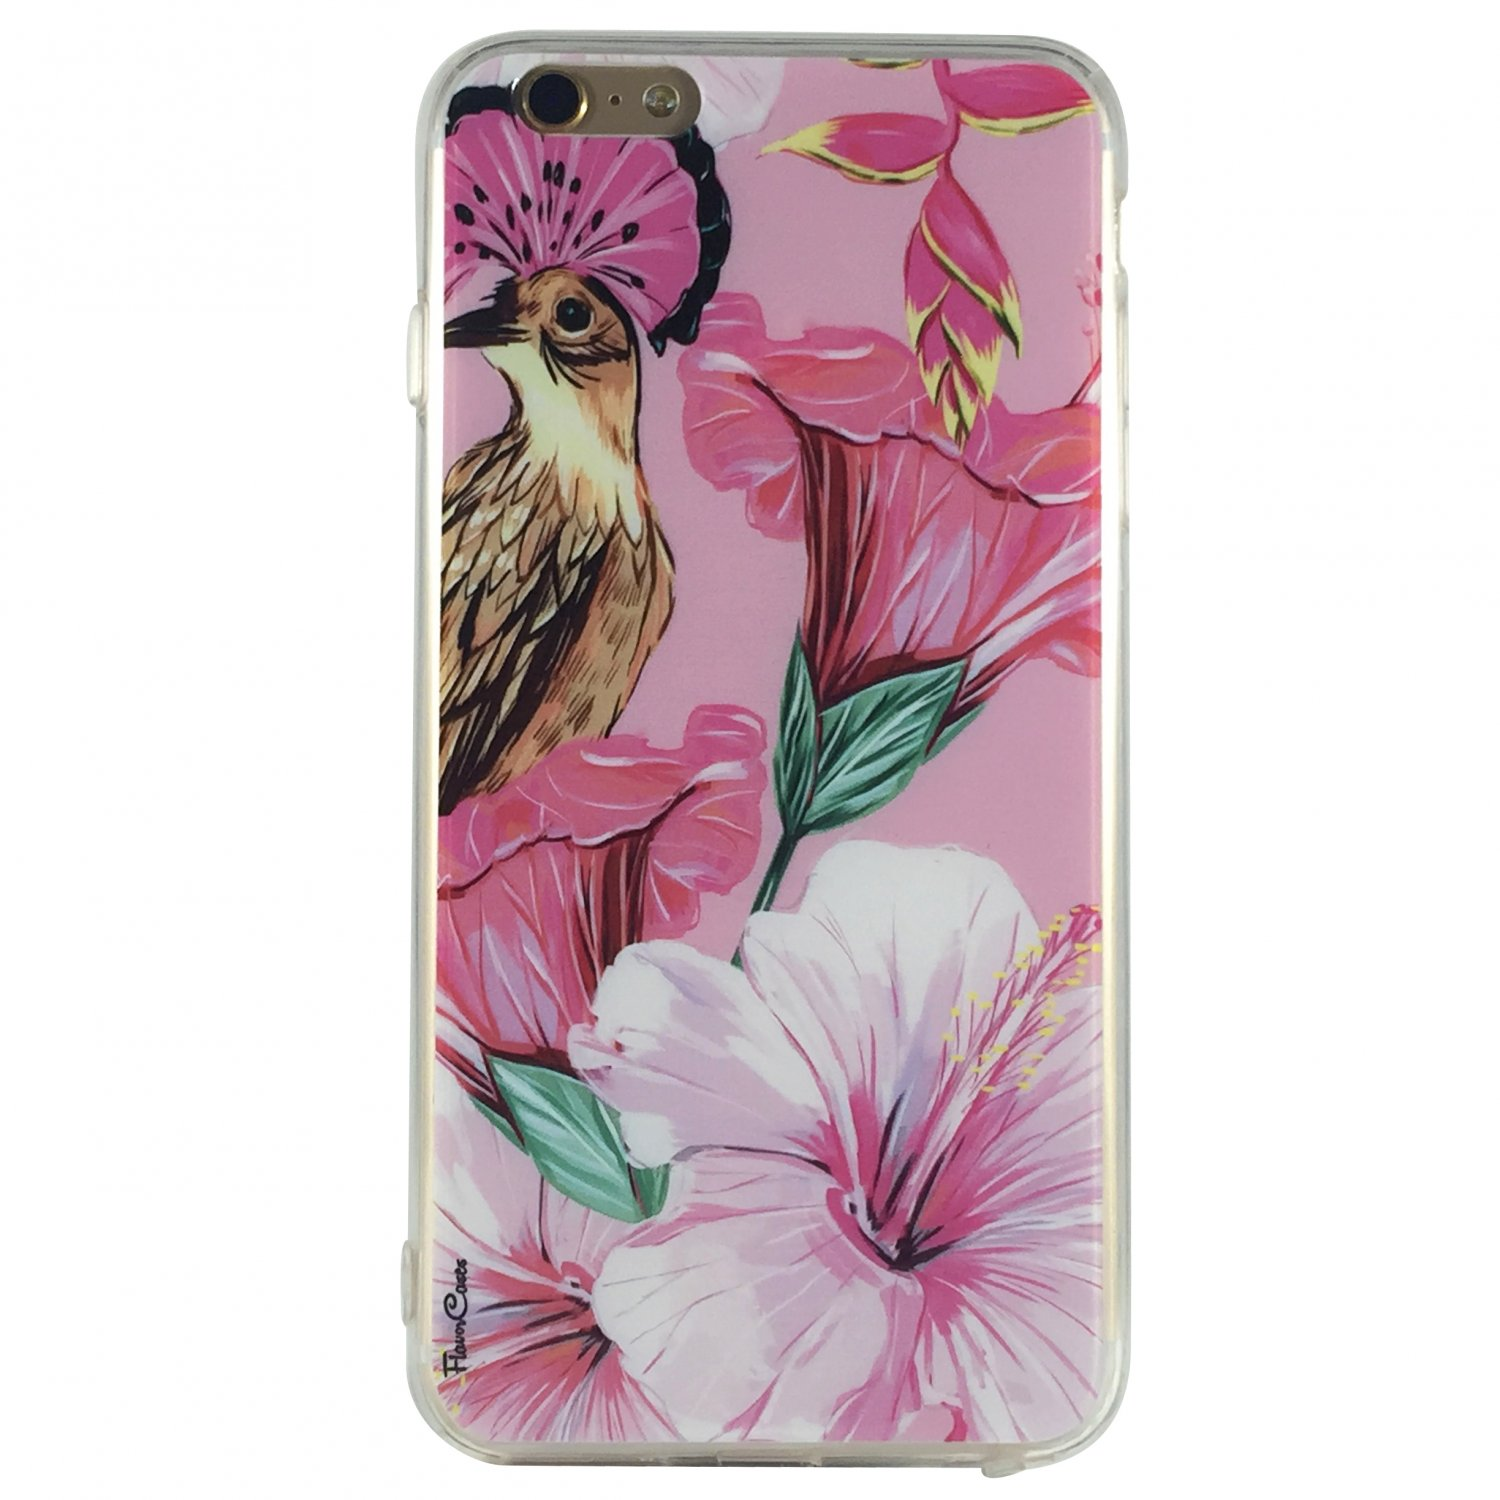 Maya 's Nest - New Floral Maya Birds Cell Phone Case iPhone 6 ip6